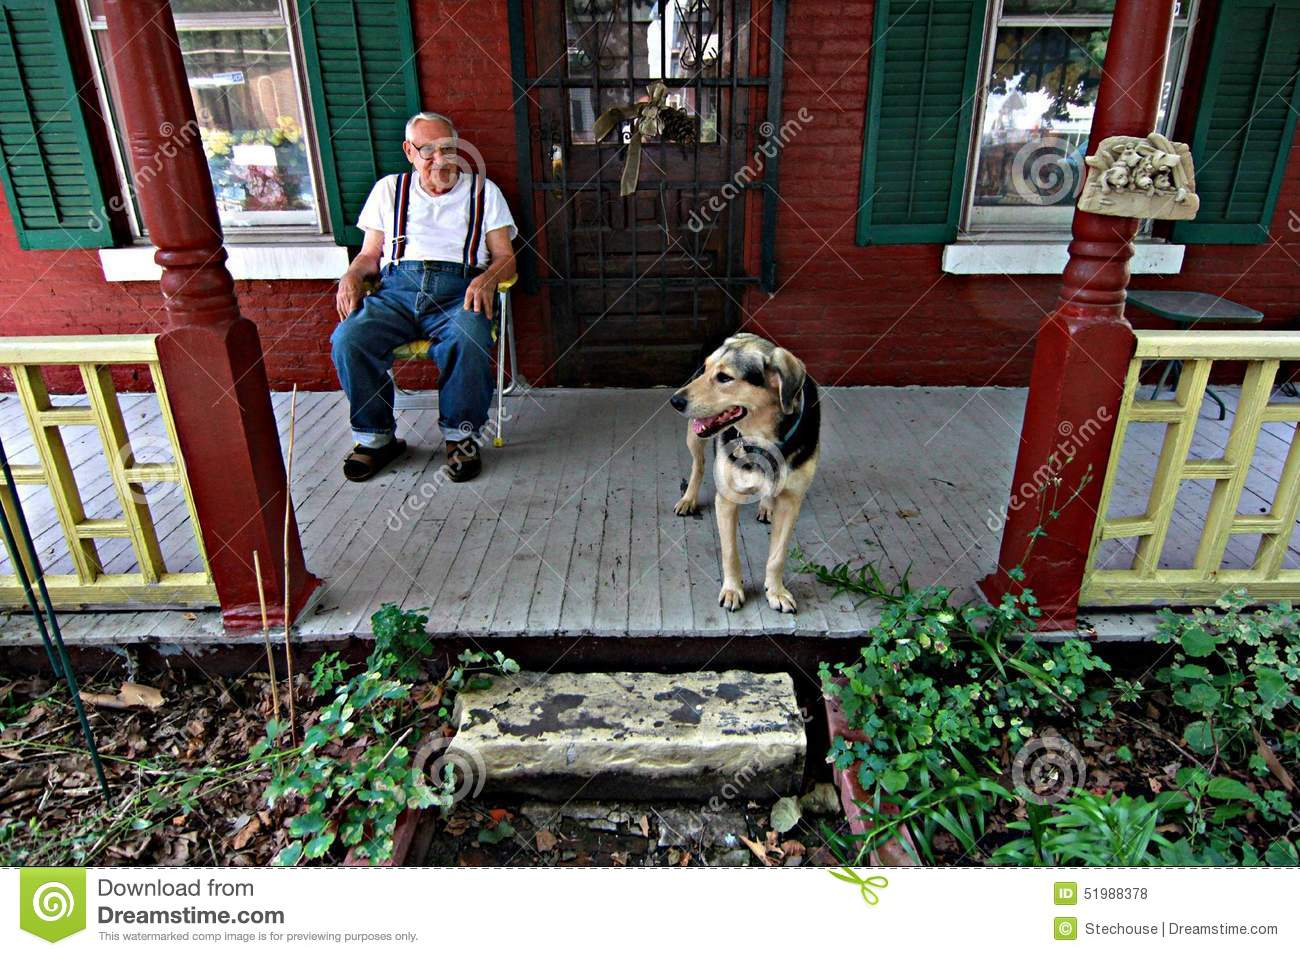 Man On Dog : Man on porch with dog editorial stock photo image